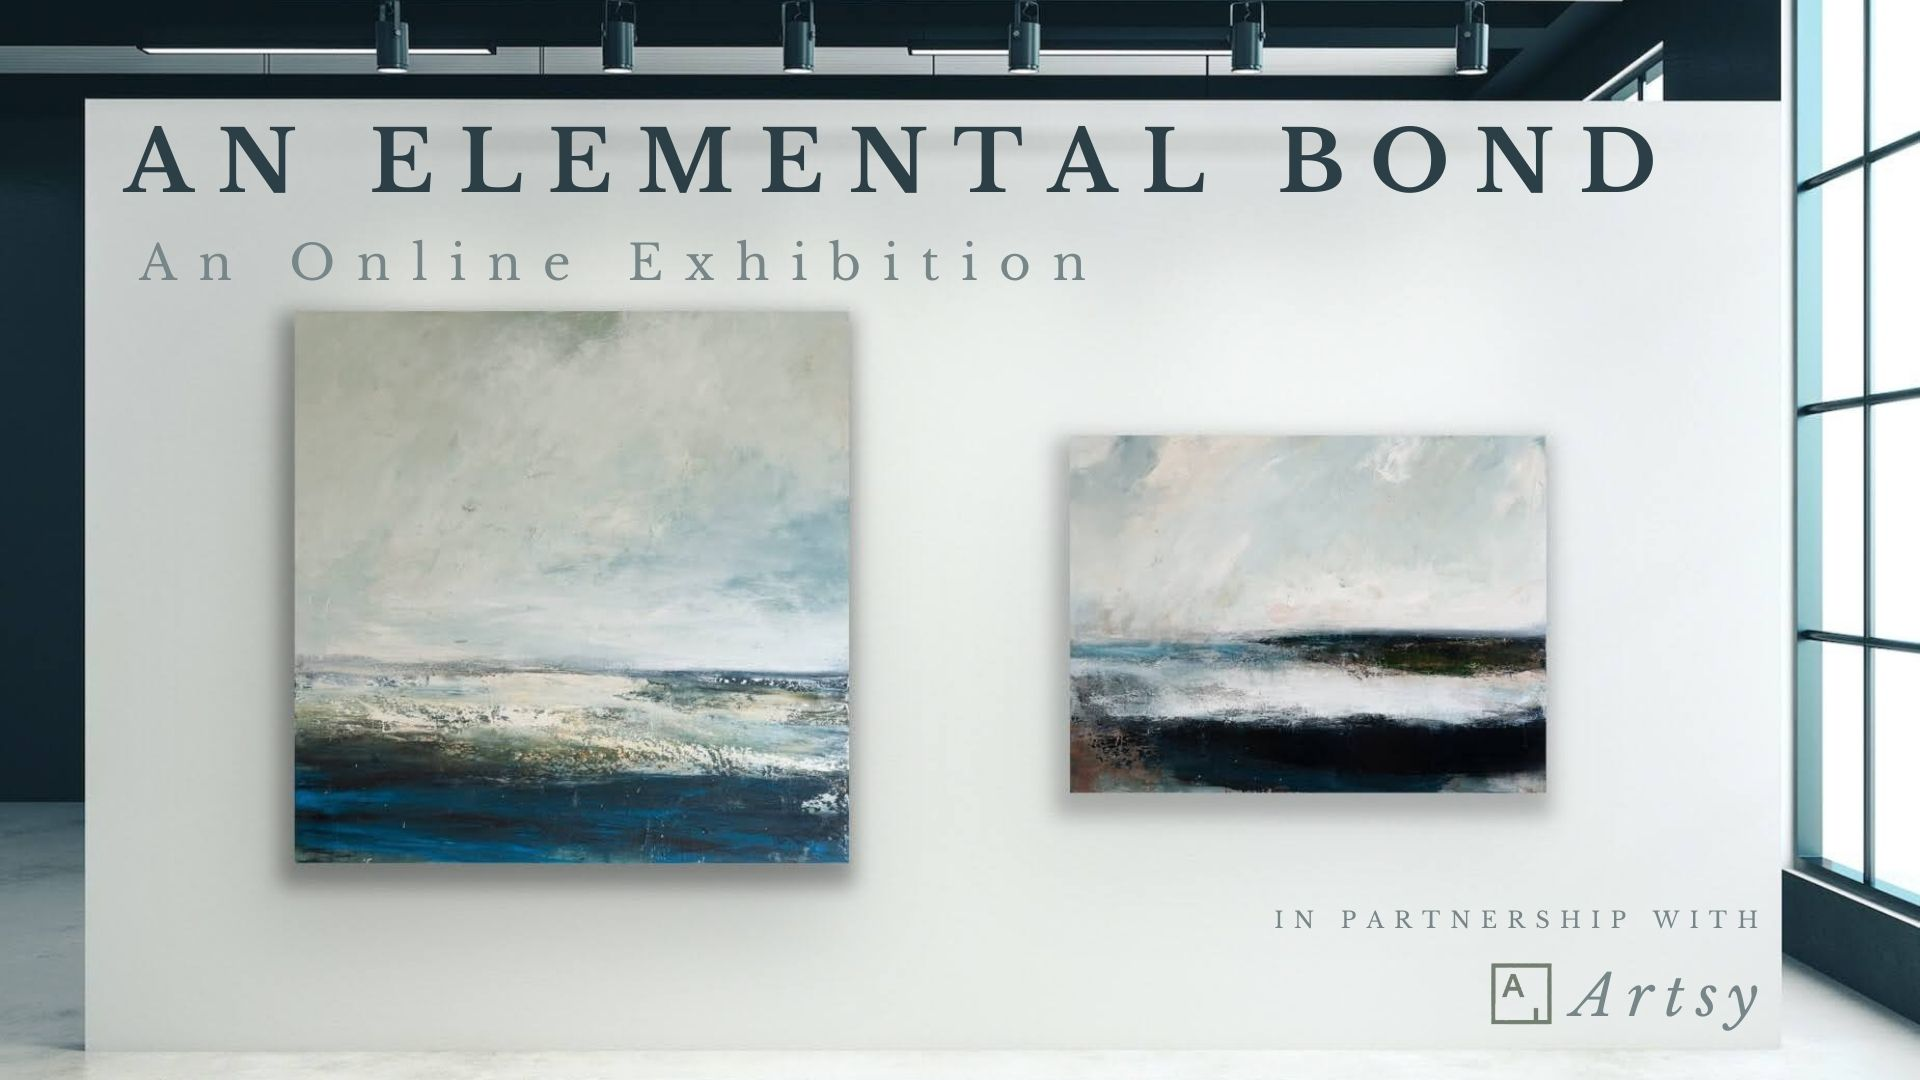 An Elemental Bond Belgravia Gallery Online Exhibition